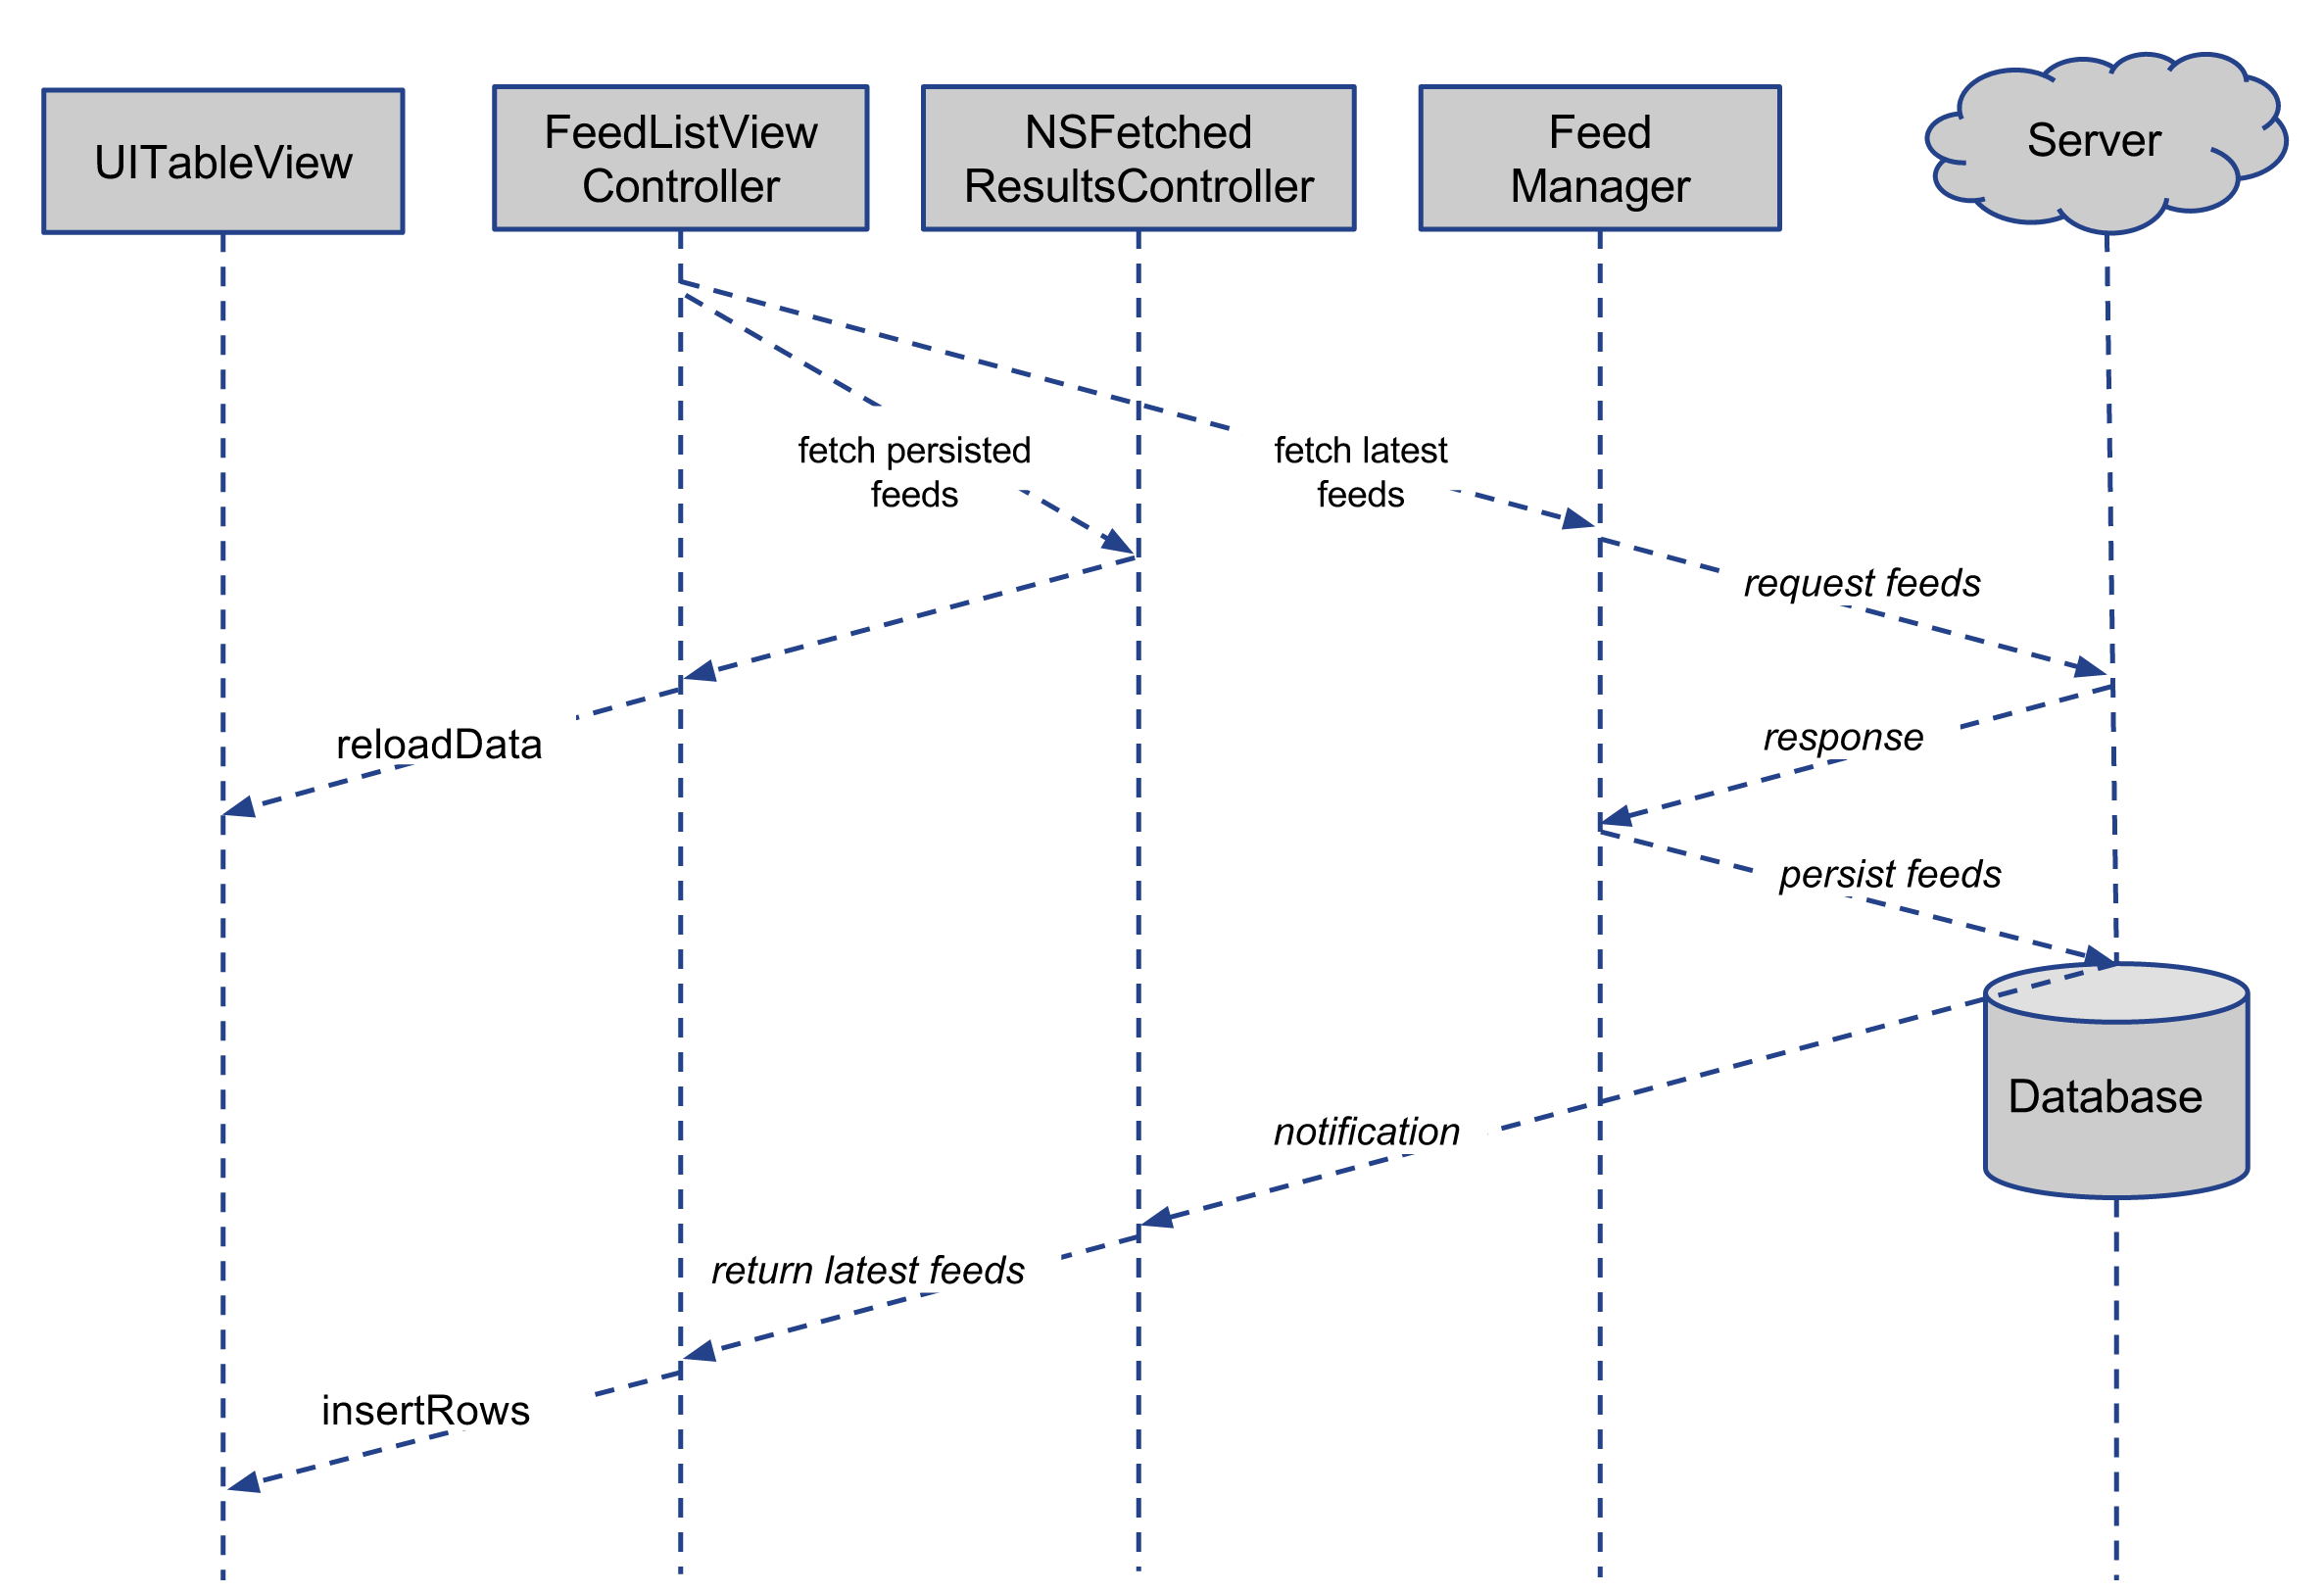 feed_display_workflow_with_nsfetchedresultscontroller.png